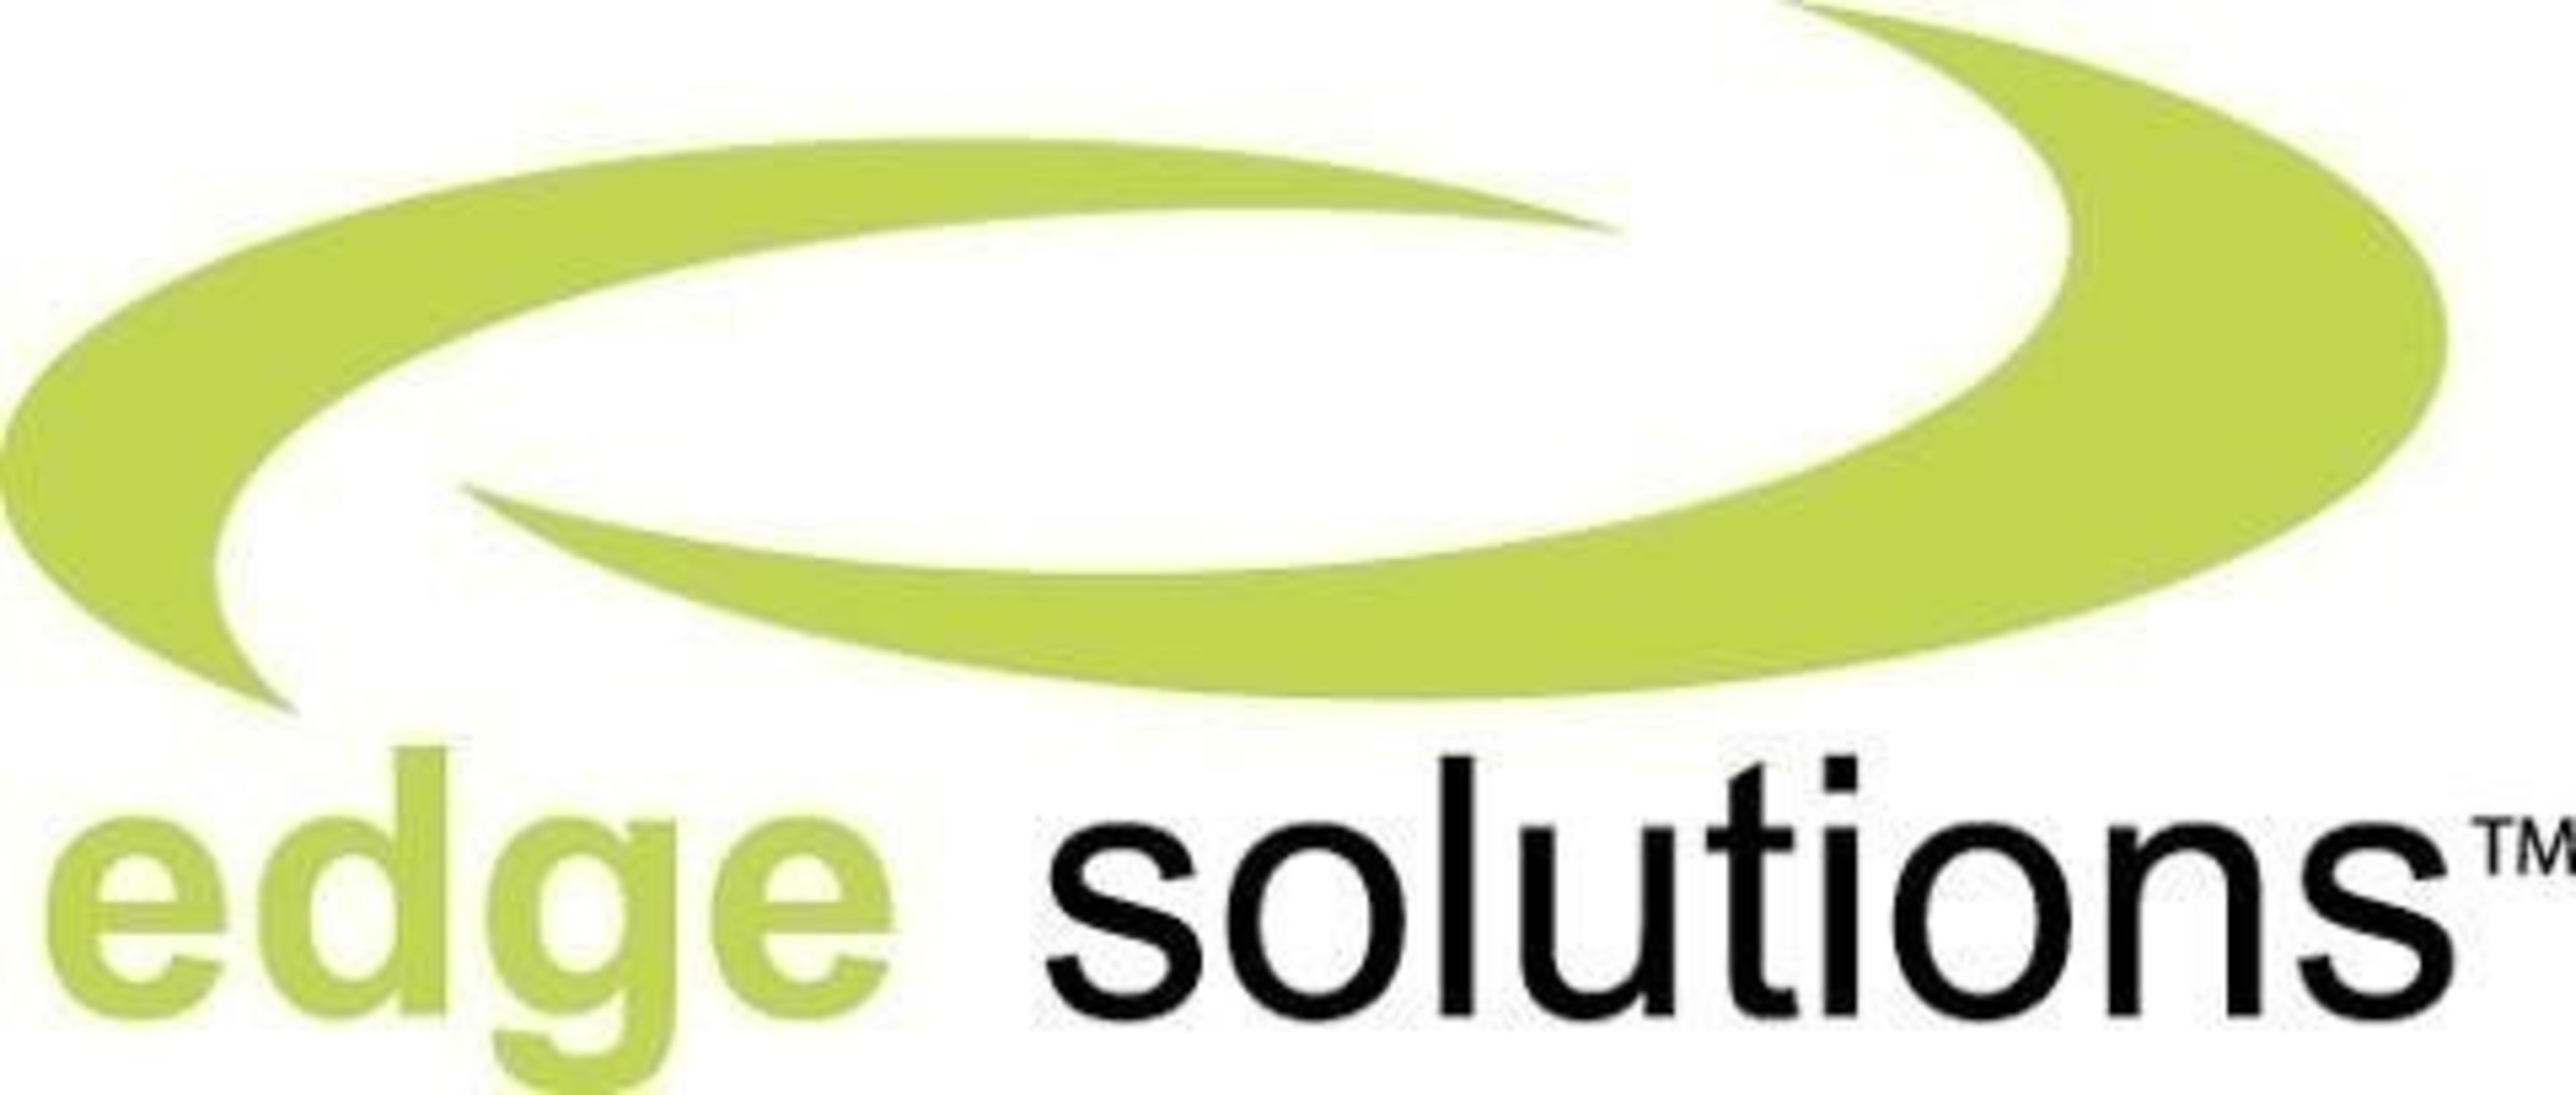 Edge Solutions Expands Management Team to Fuel Growth